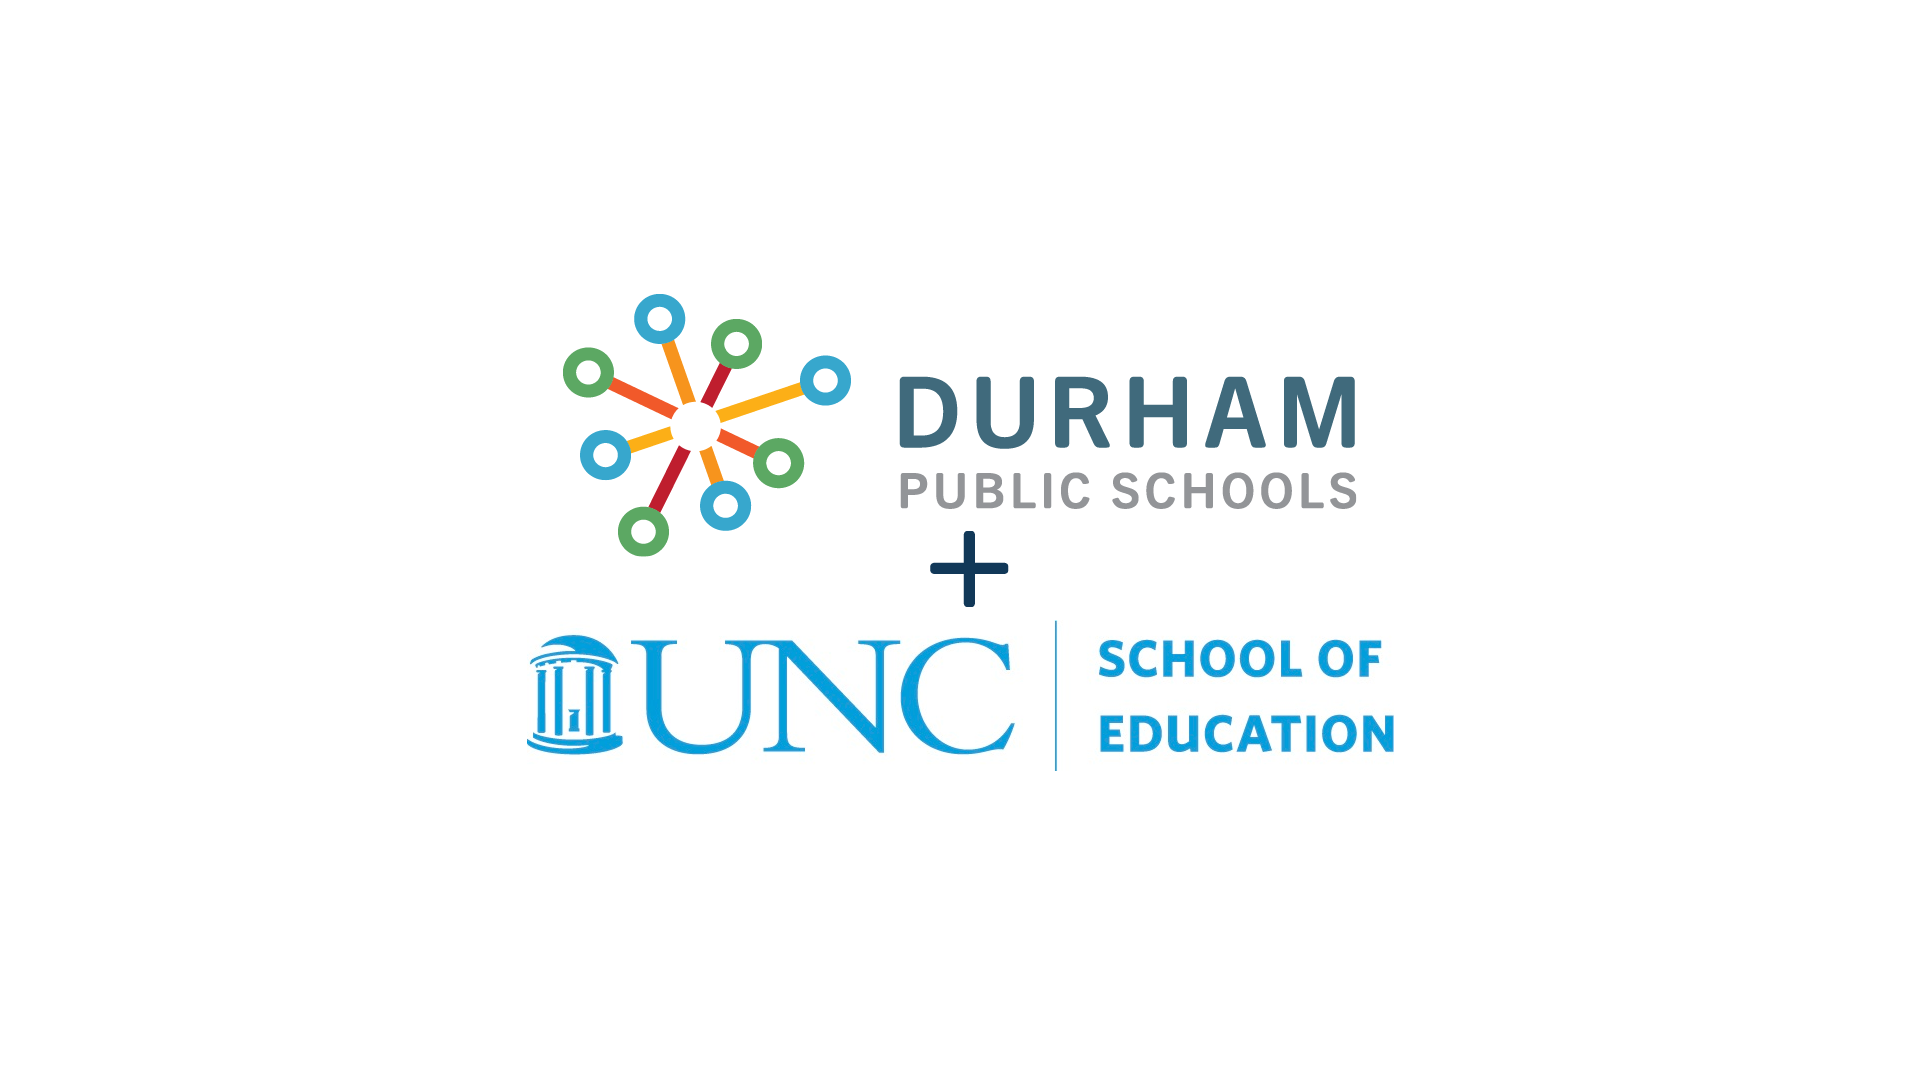 DPS, UNC at Chapel Hill School of Education win $4.8 million grant